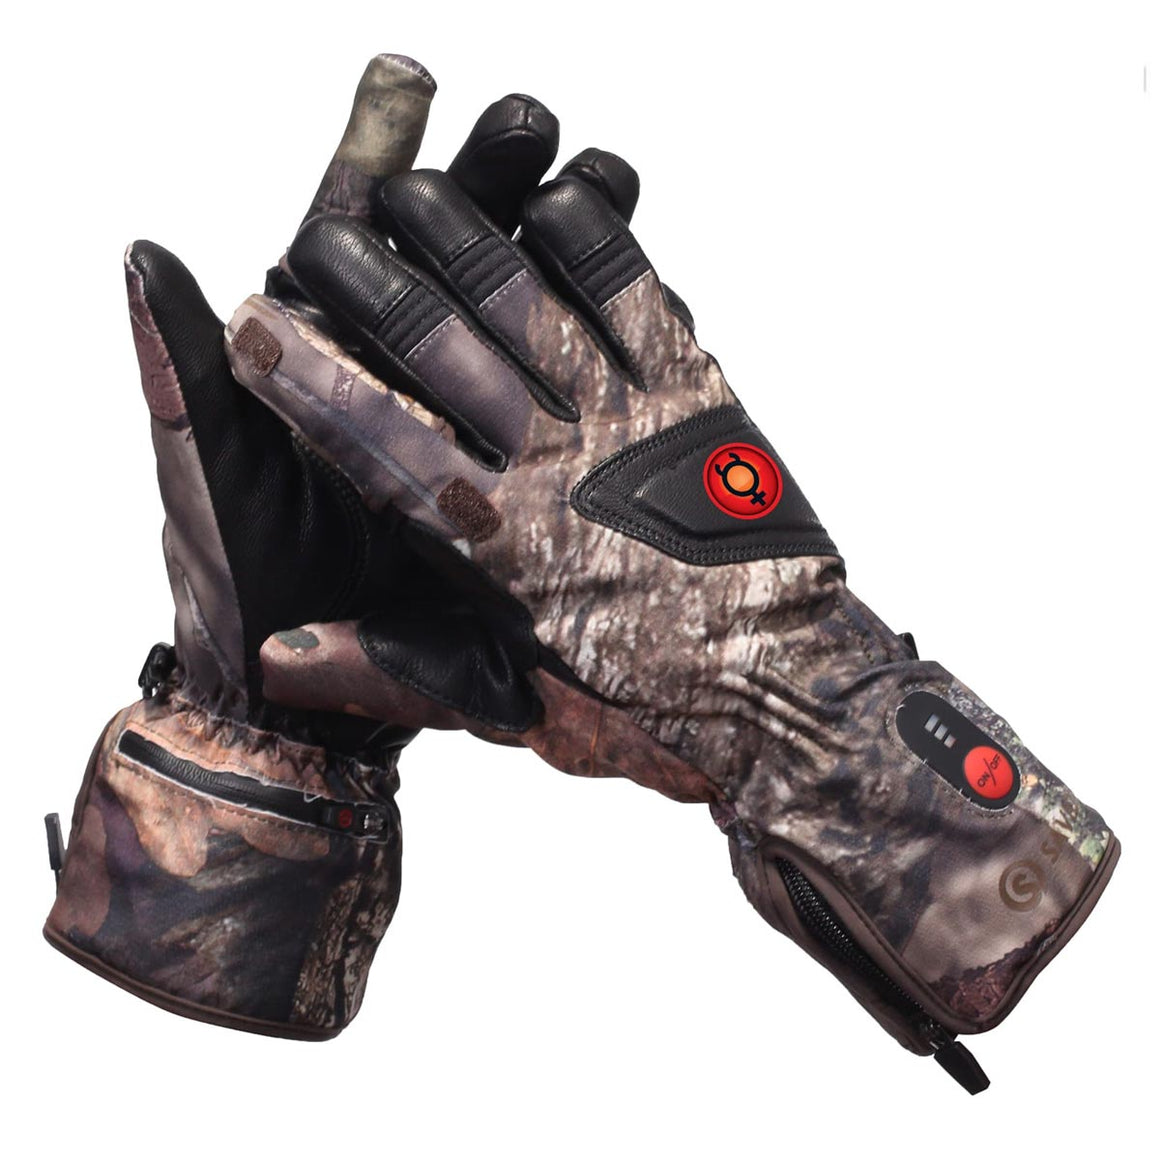 Vulcan Heated Hunting Gloves